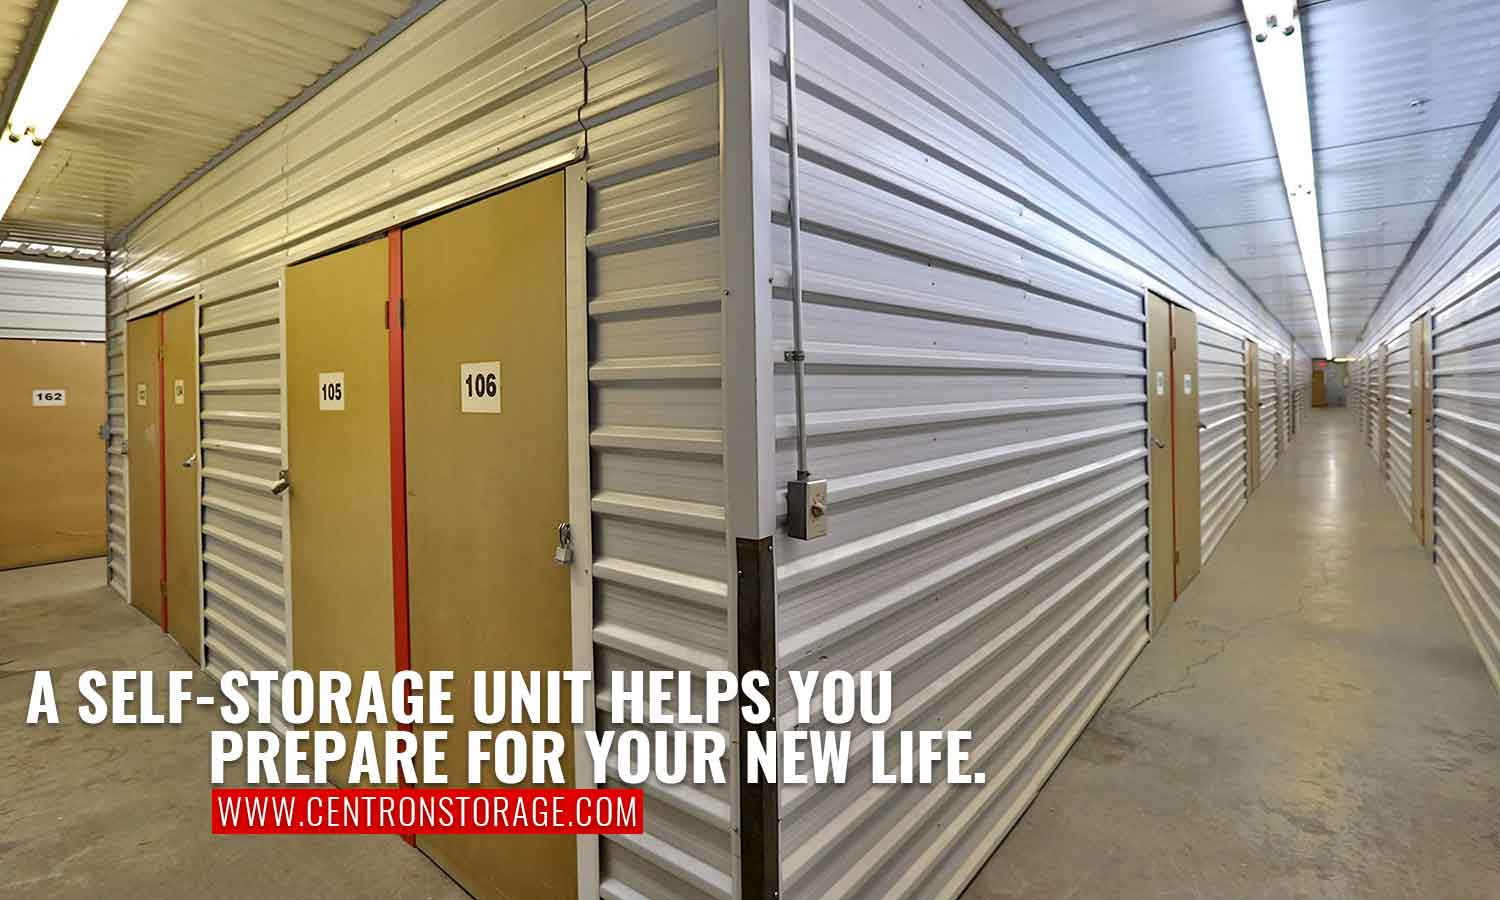 A self-storage unit helps you prepare for your new life.